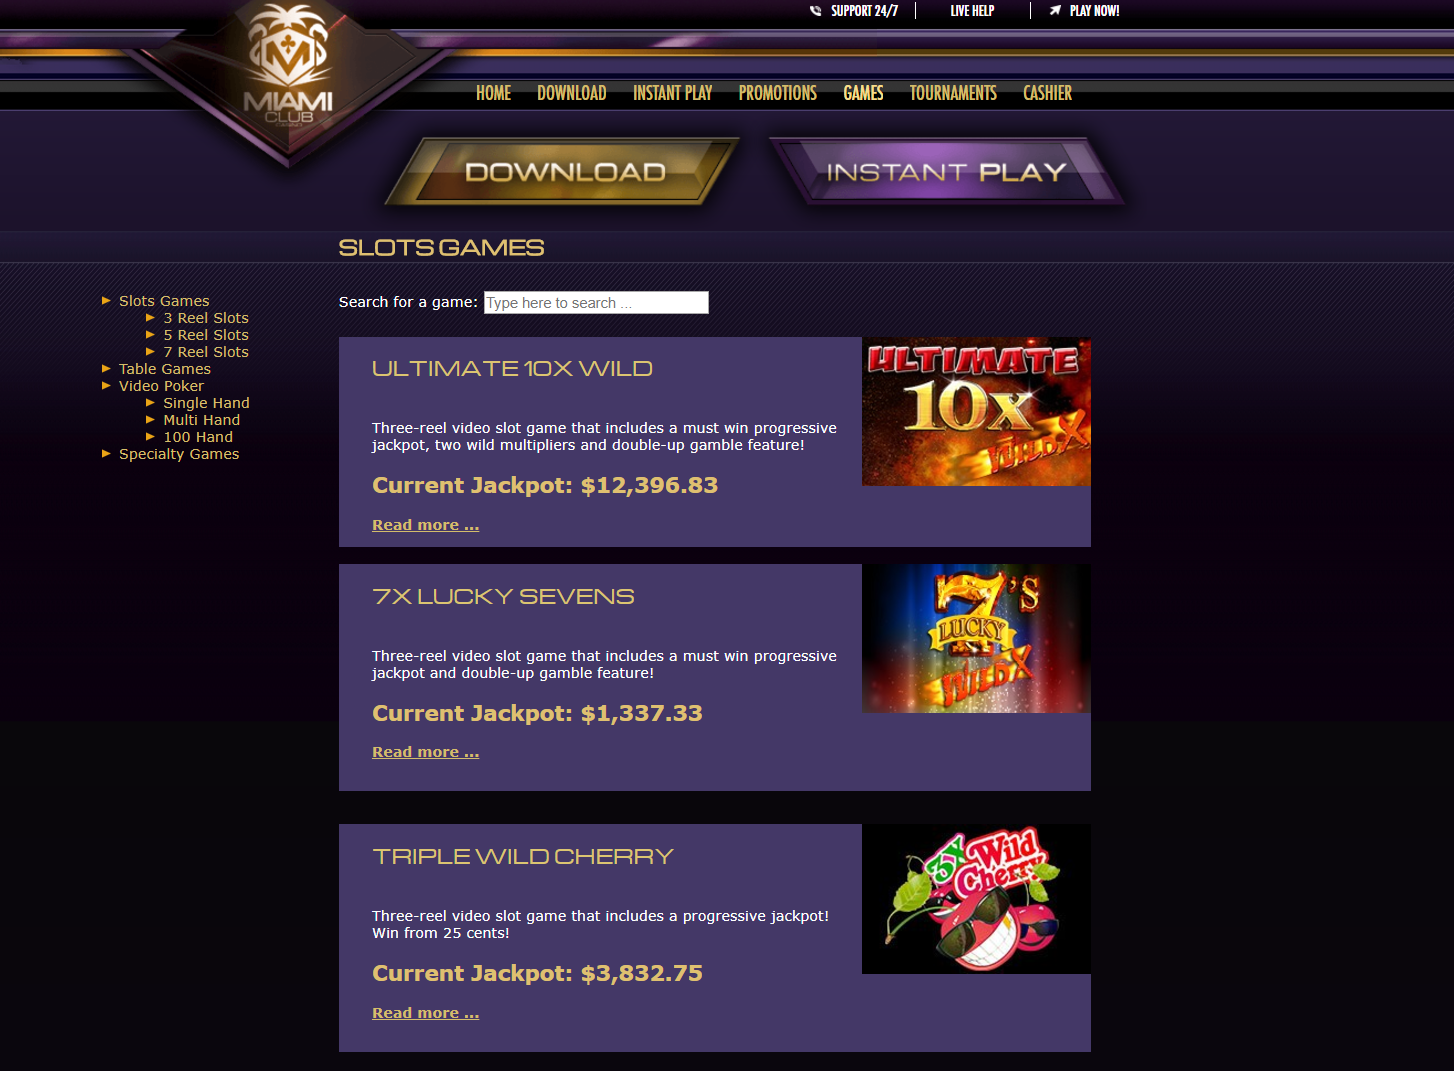 miami club casino address